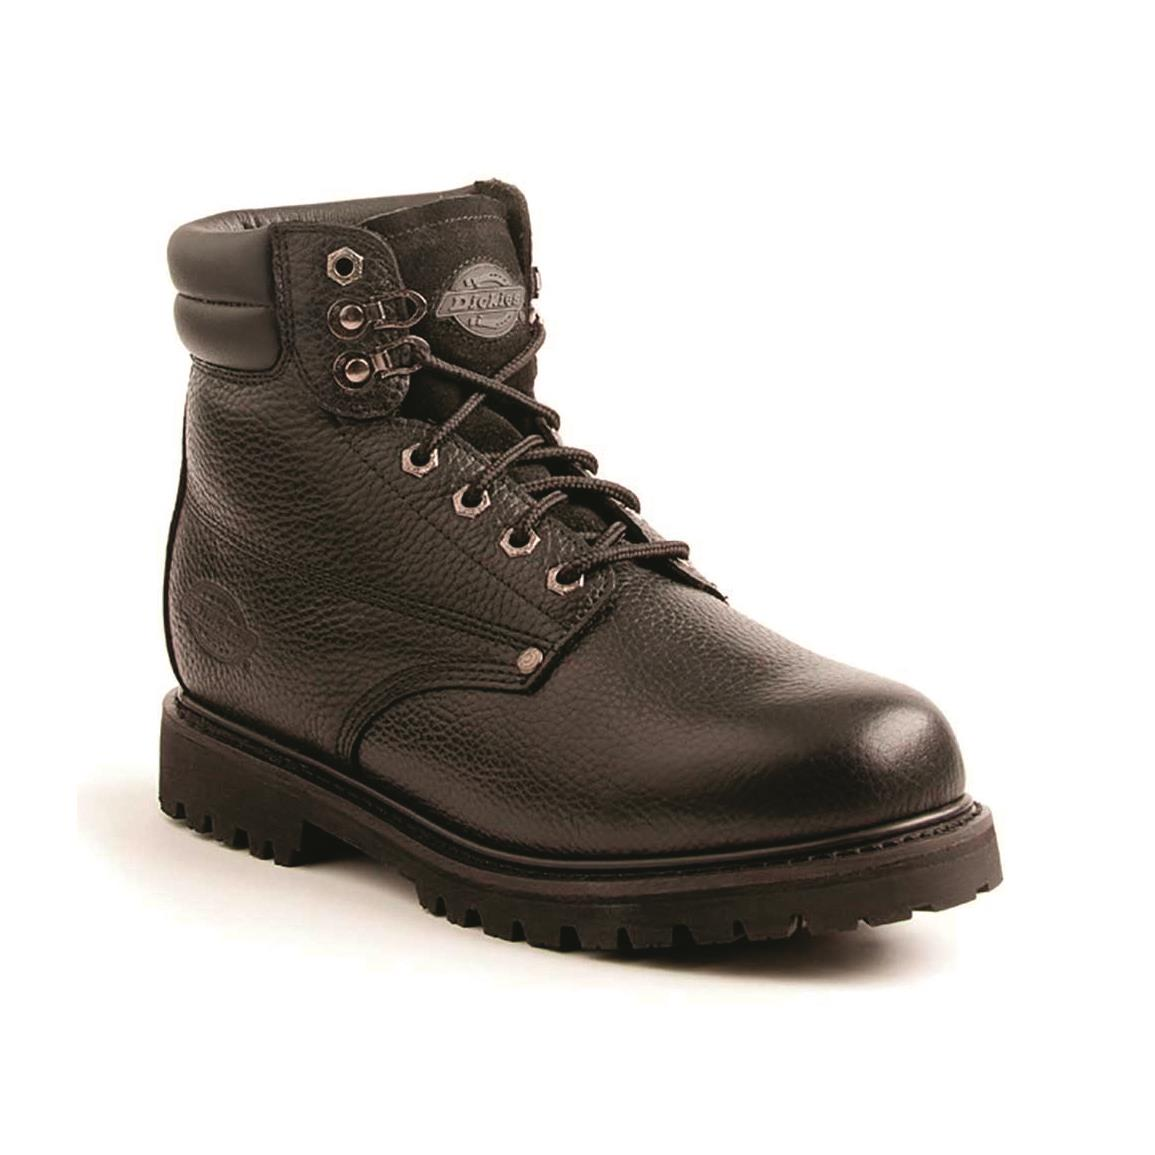 Dickies Men's Raider Work Boots, Black